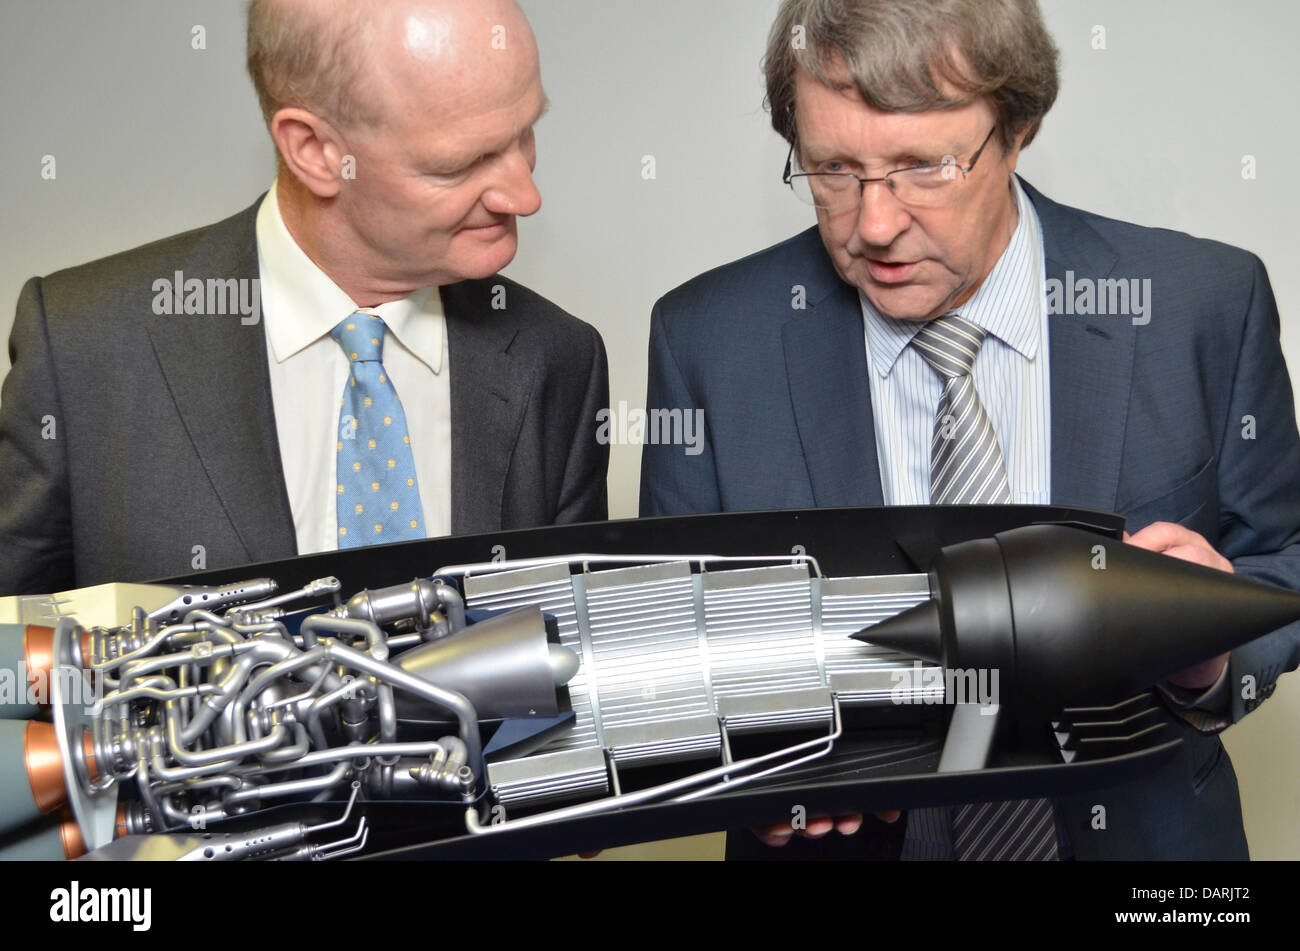 Glasgow, UK. 18th July, 2013. UK Government Science and Universities Minister David Willetts (L) with Alan Bond - Stock Image